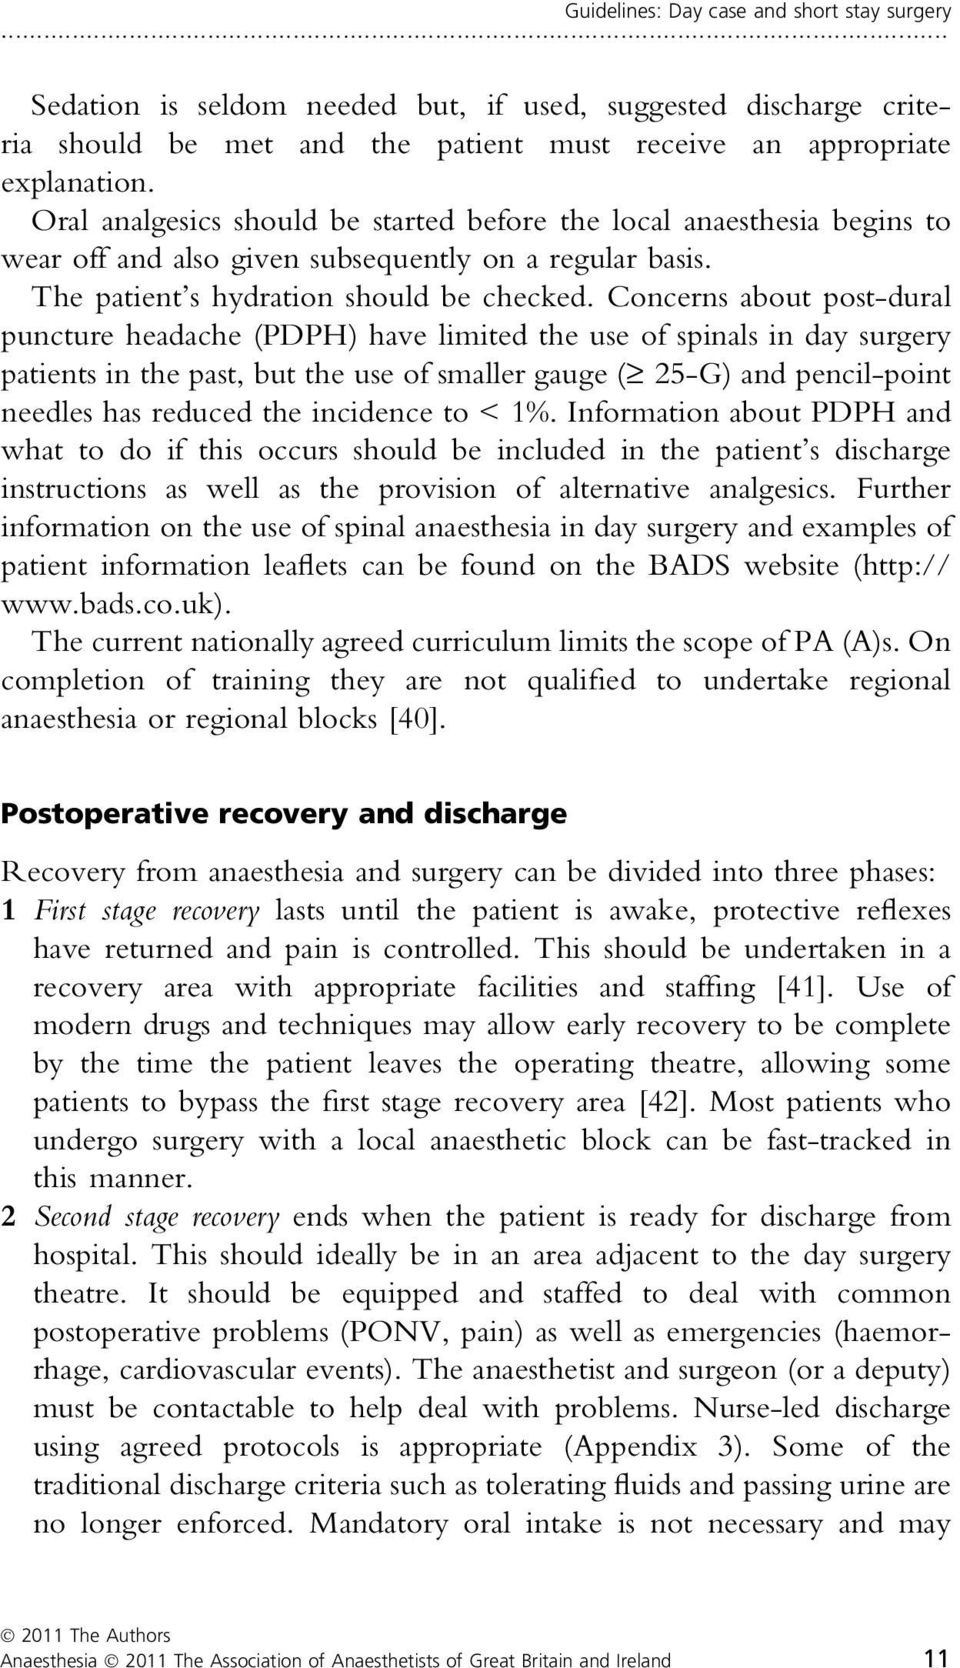 Concerns about post-dural puncture headache (PDPH) have limited the use of spinals in day surgery patients in the past, but the use of smaller gauge ( 25-G) and pencil-point needles has reduced the